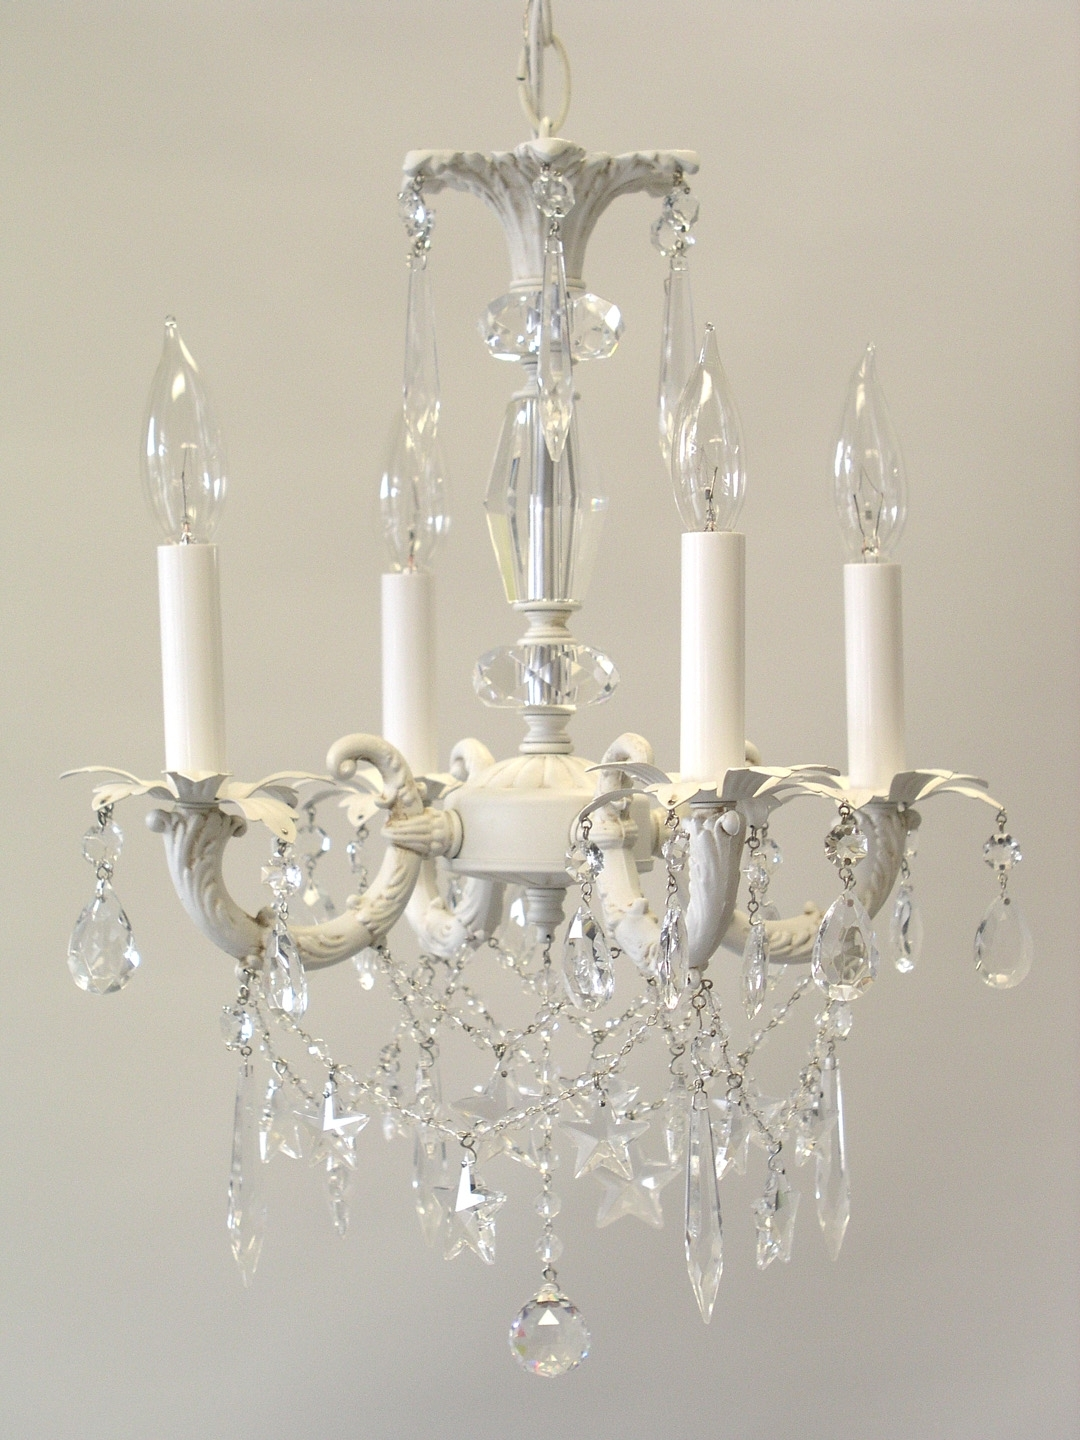 Small Shabby Chic Chandelier For 2017 More Shabby Chic Style Chandeliers (View 4 of 15)